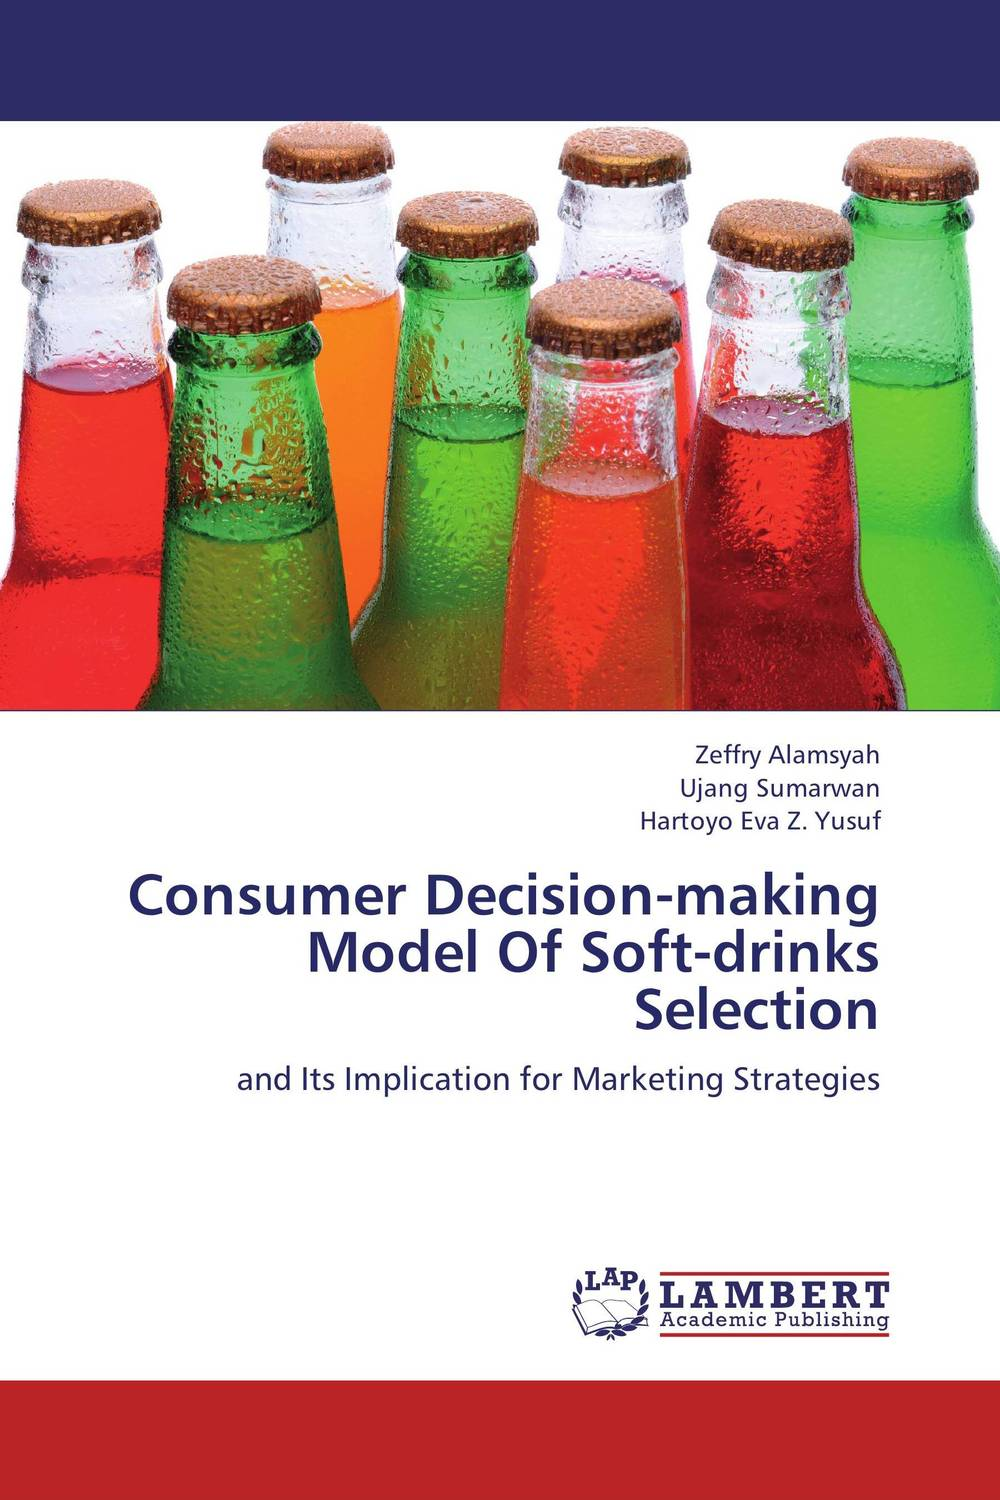 Consumer Decision-making Model Of Soft-drinks Selection cdm2b bore 20 40mm stroke 25 300mm mini cylinder double acting more types refer to form